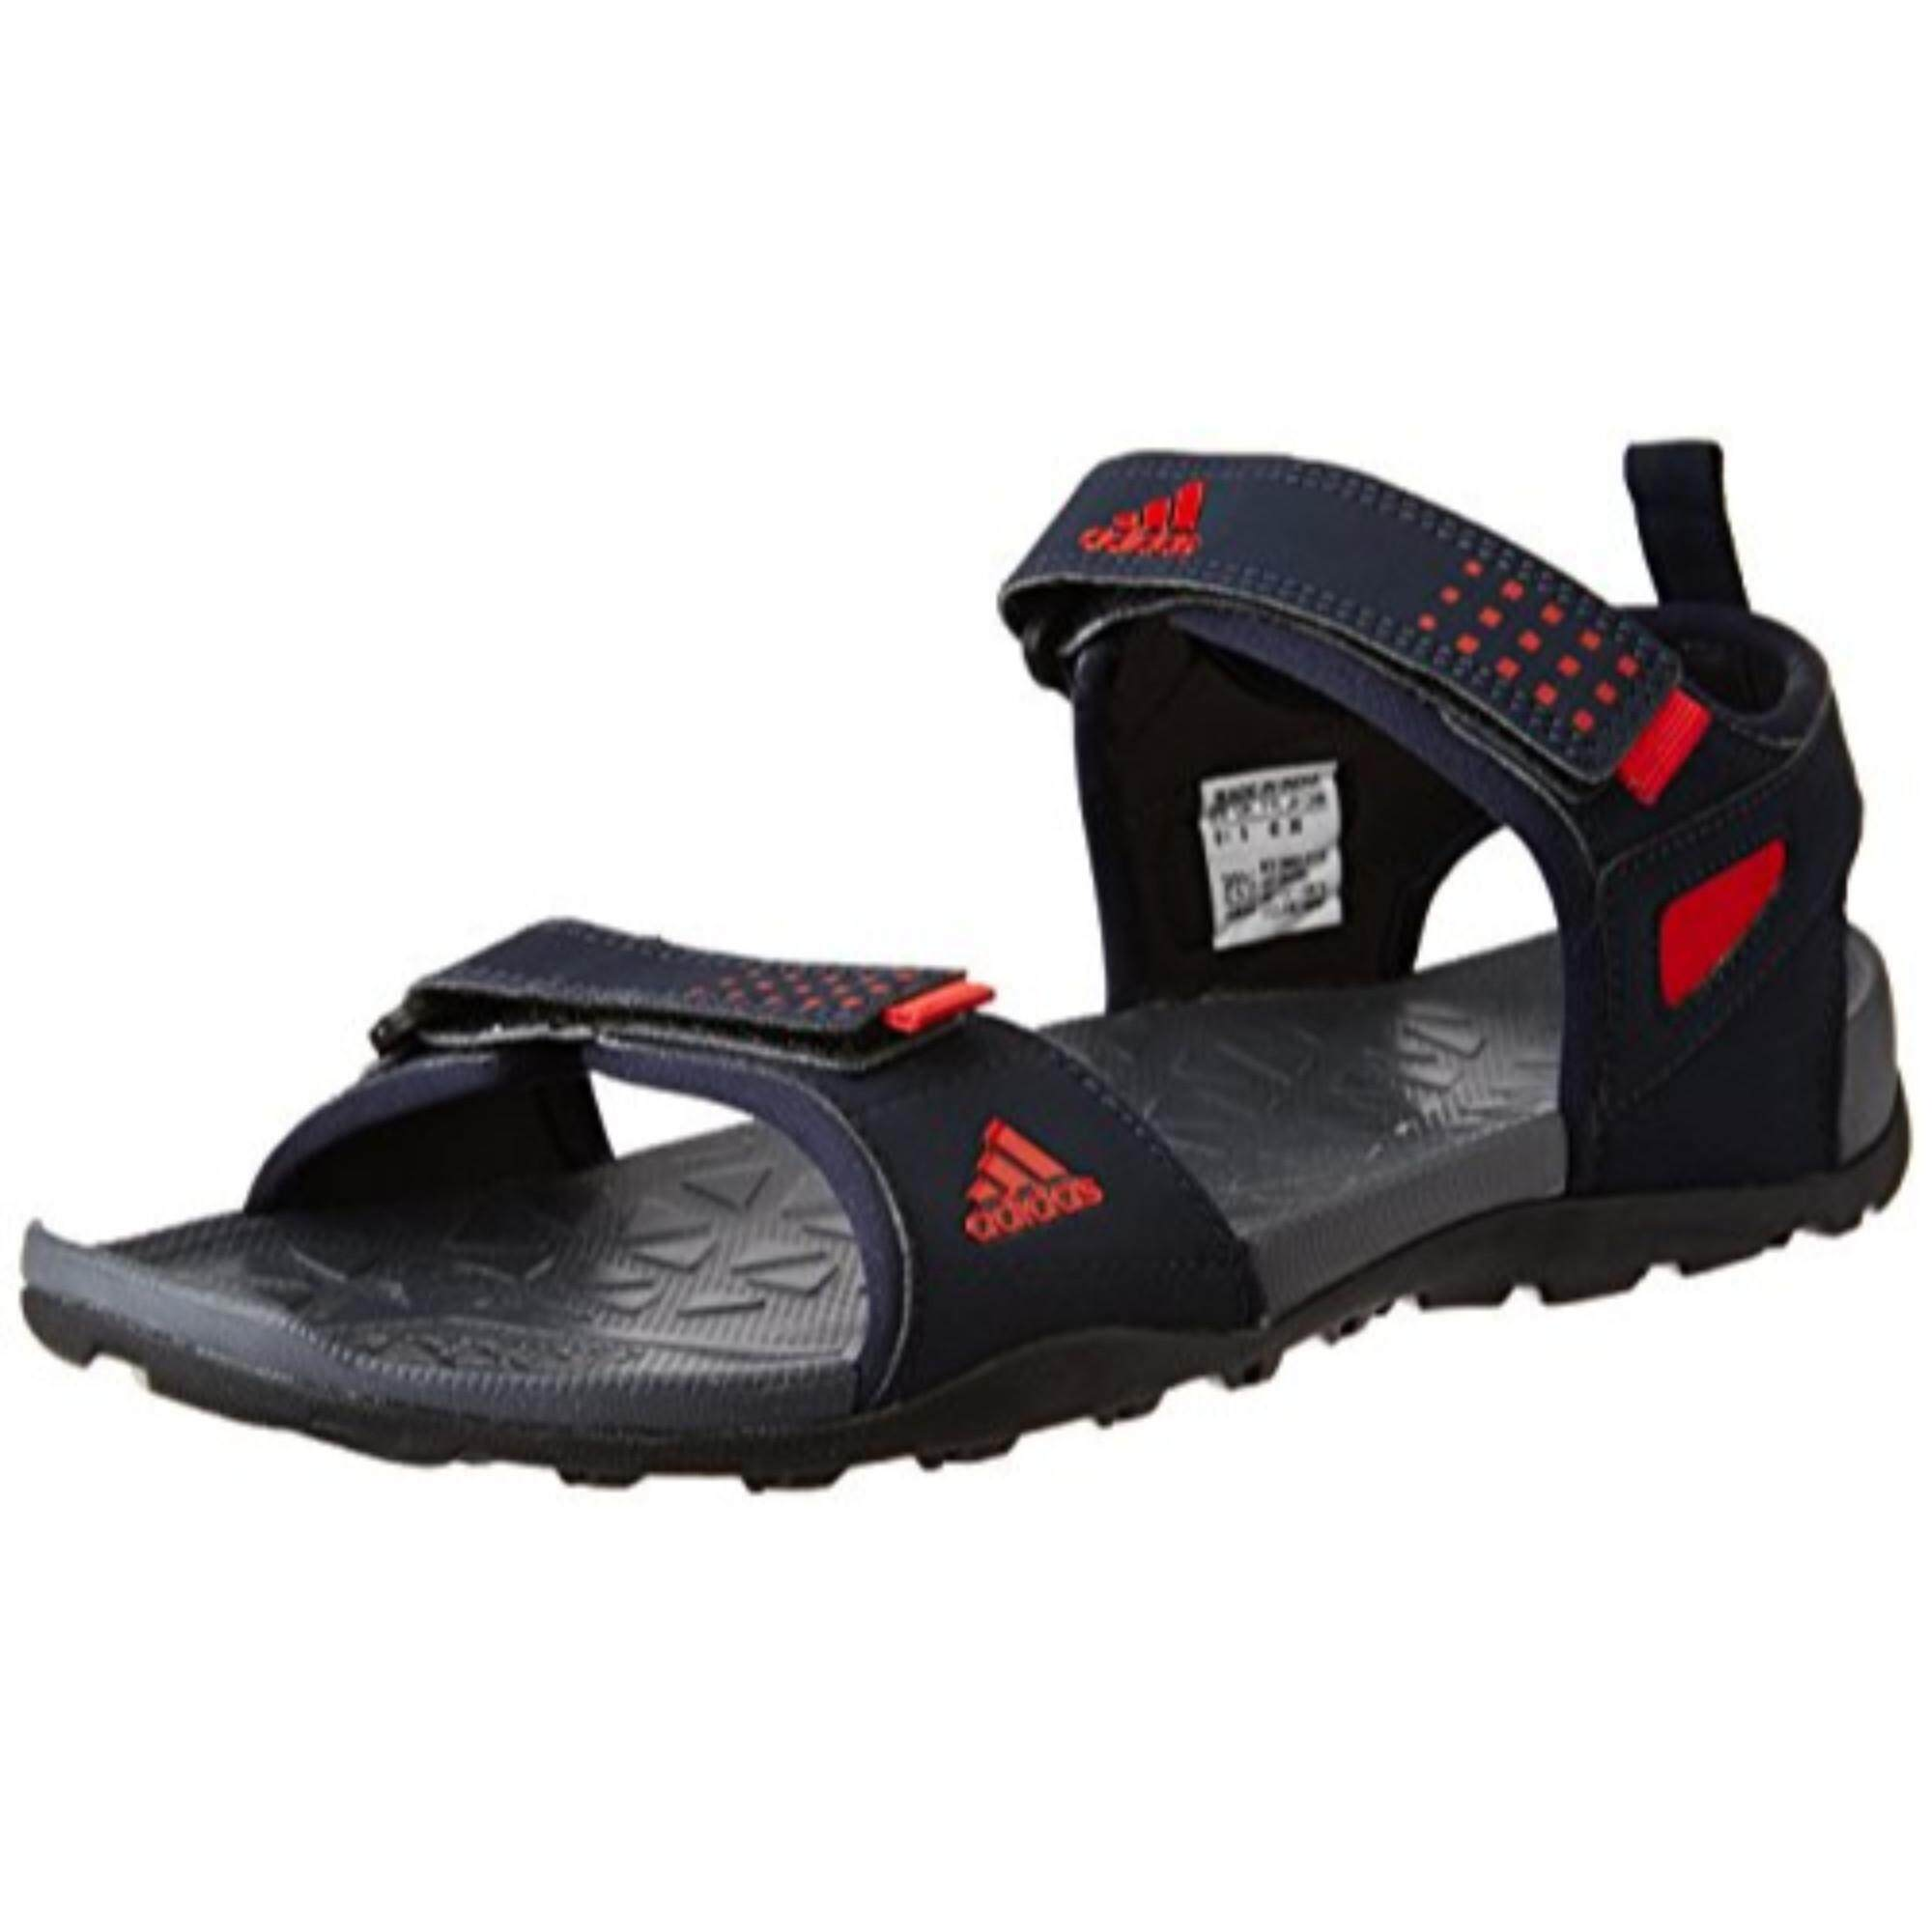 8cca73977bc0 Adidas shop-mens-sandals-2 price in Malaysia - Best Adidas shop-mens ...